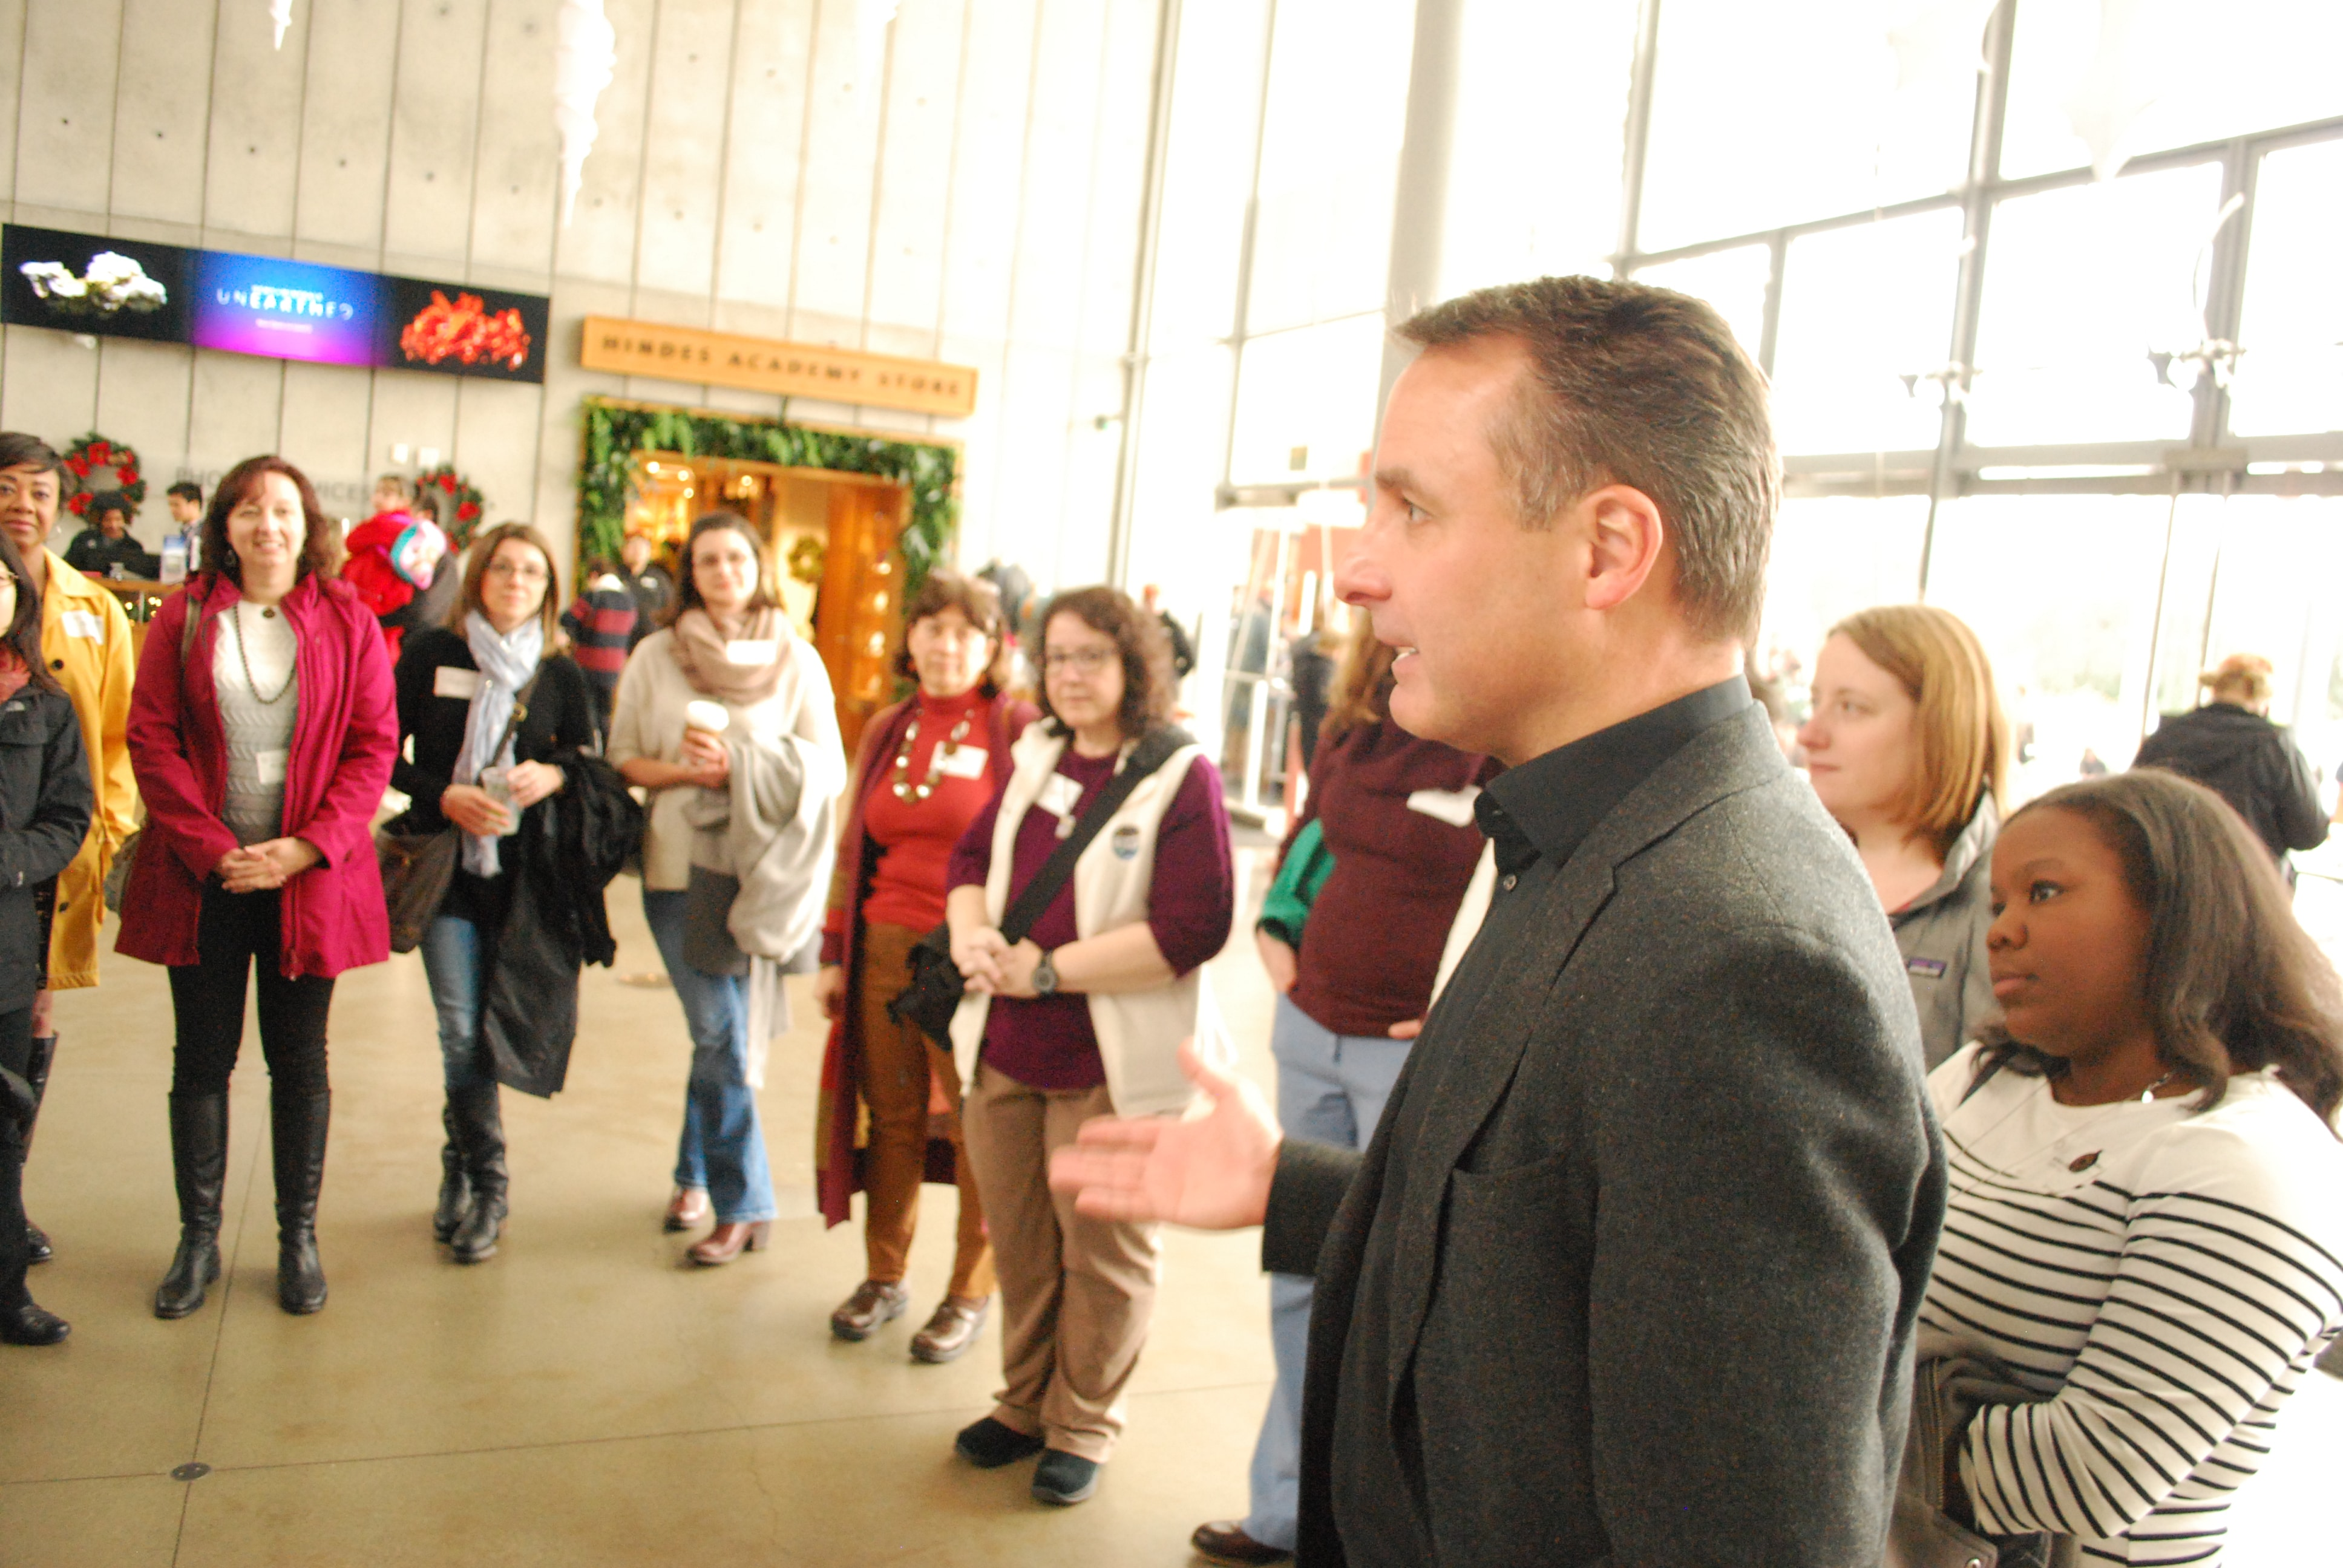 CAS Director Jon Foley leading a special ESWN tour of the California Academy of Sciences